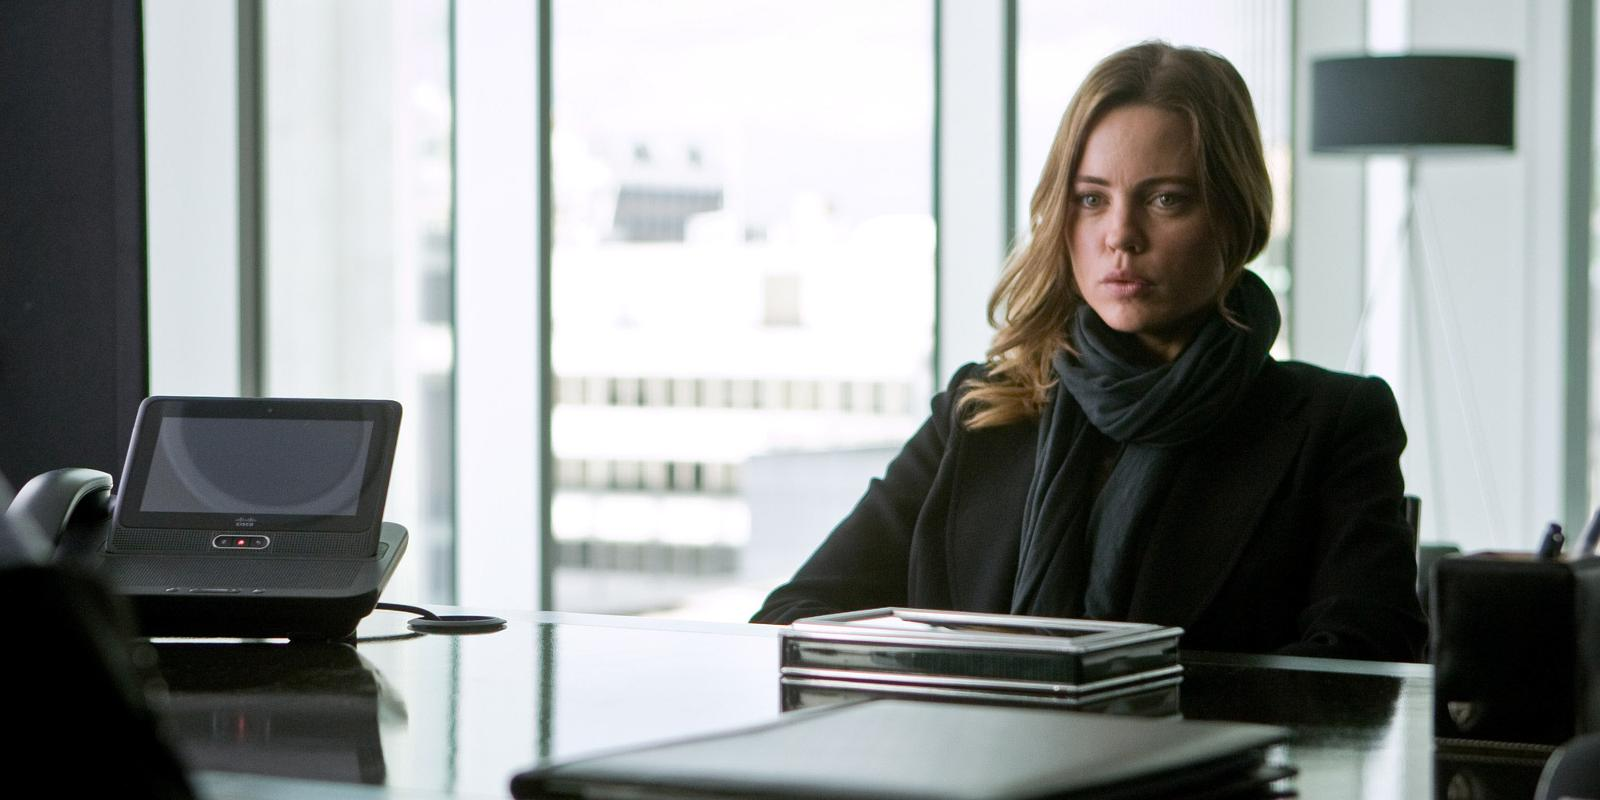 melissa george 'hunted' q&a: 'i developed muscles in strange places'